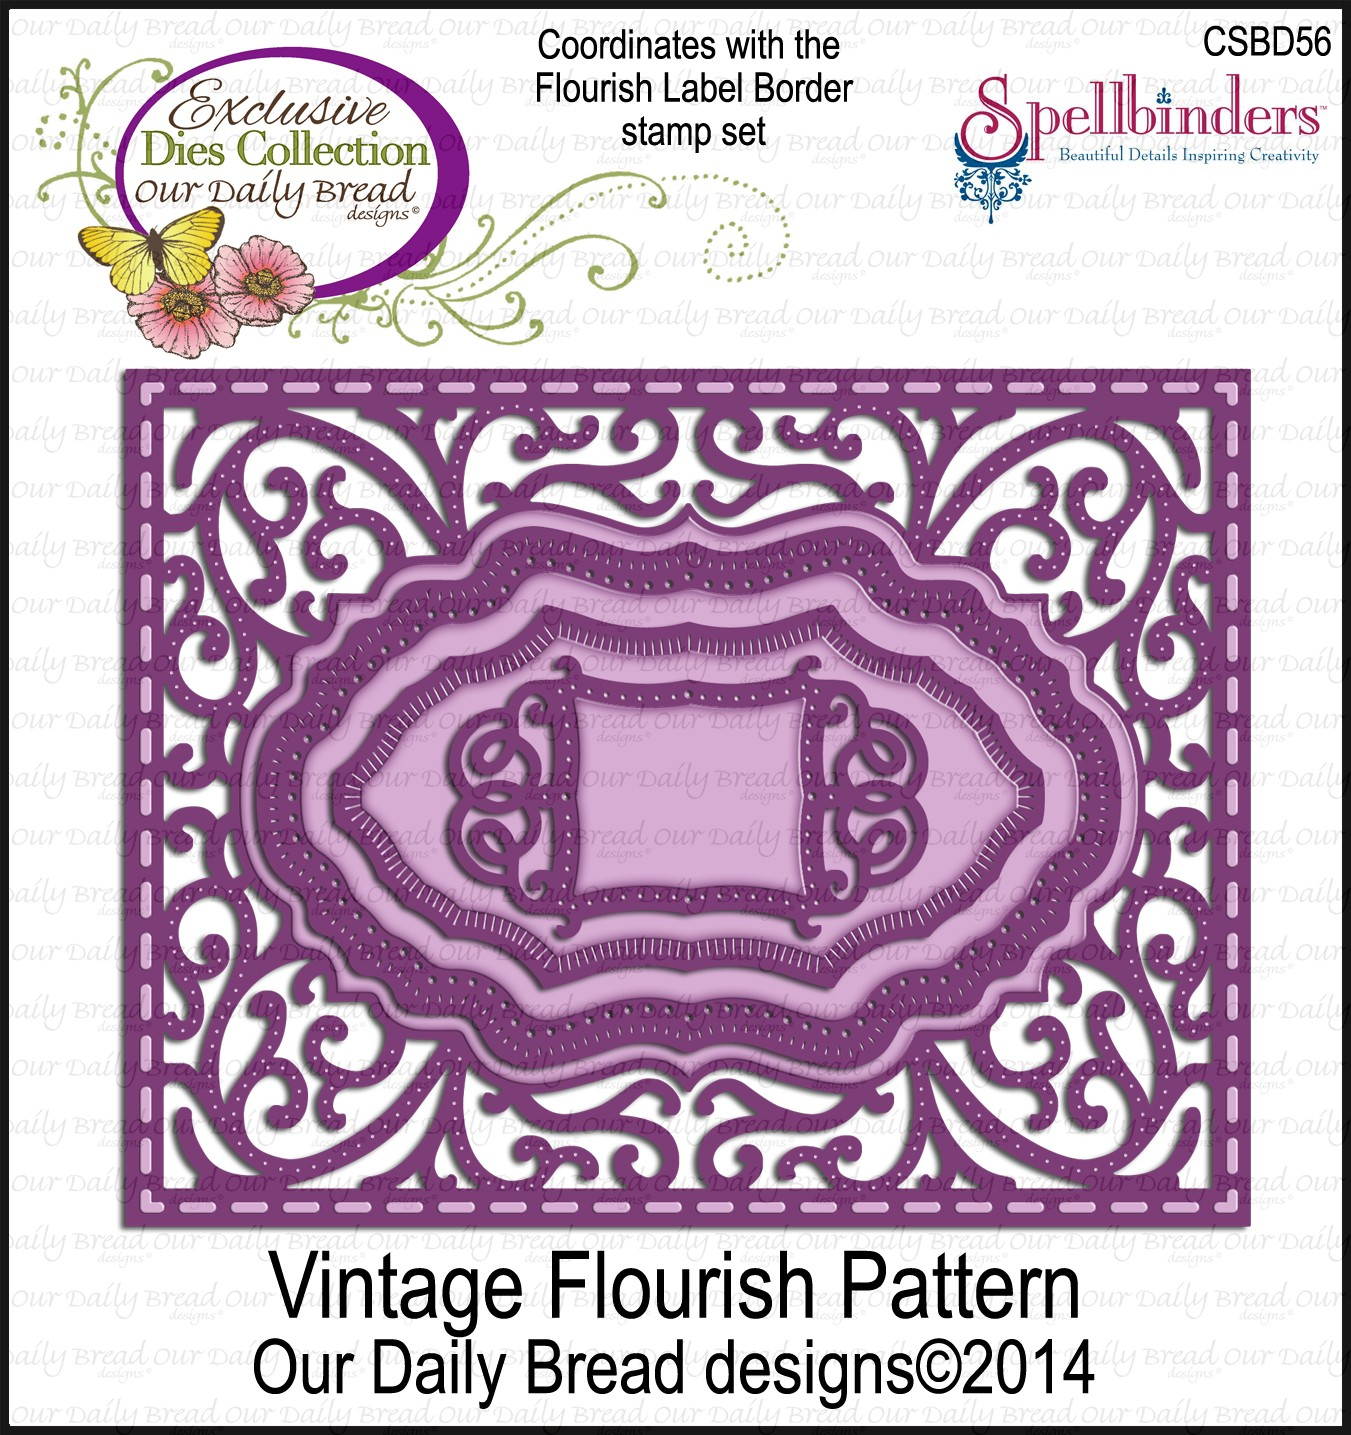 https://www.ourdailybreaddesigns.com/index.php/csbd56-vintage-flourish-pattern-dies.html